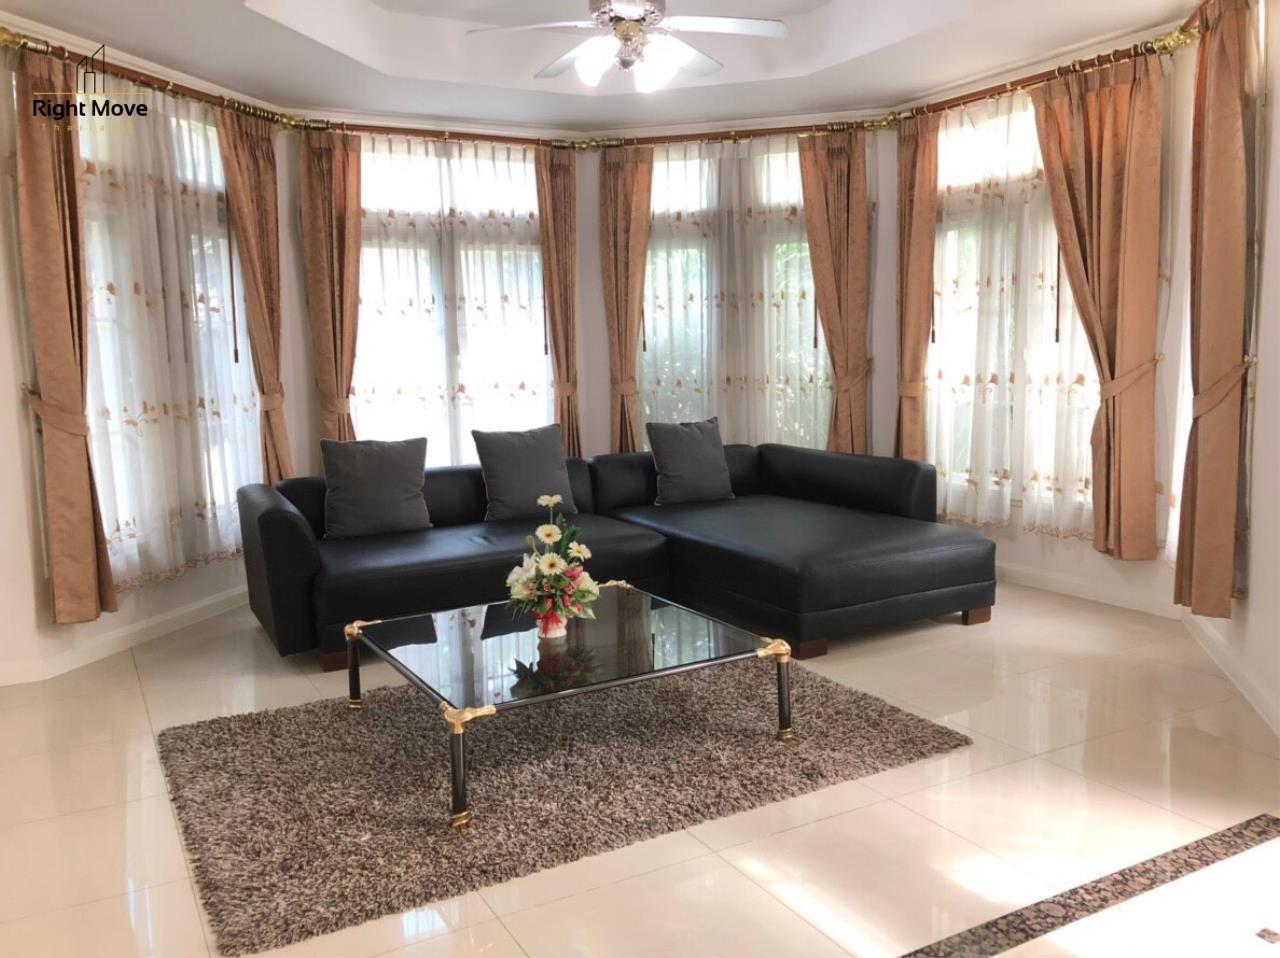 Right Move Thailand Agency's HR854 House For Rent 78,000 THB 3 Bedrooms 400 Sqm  3